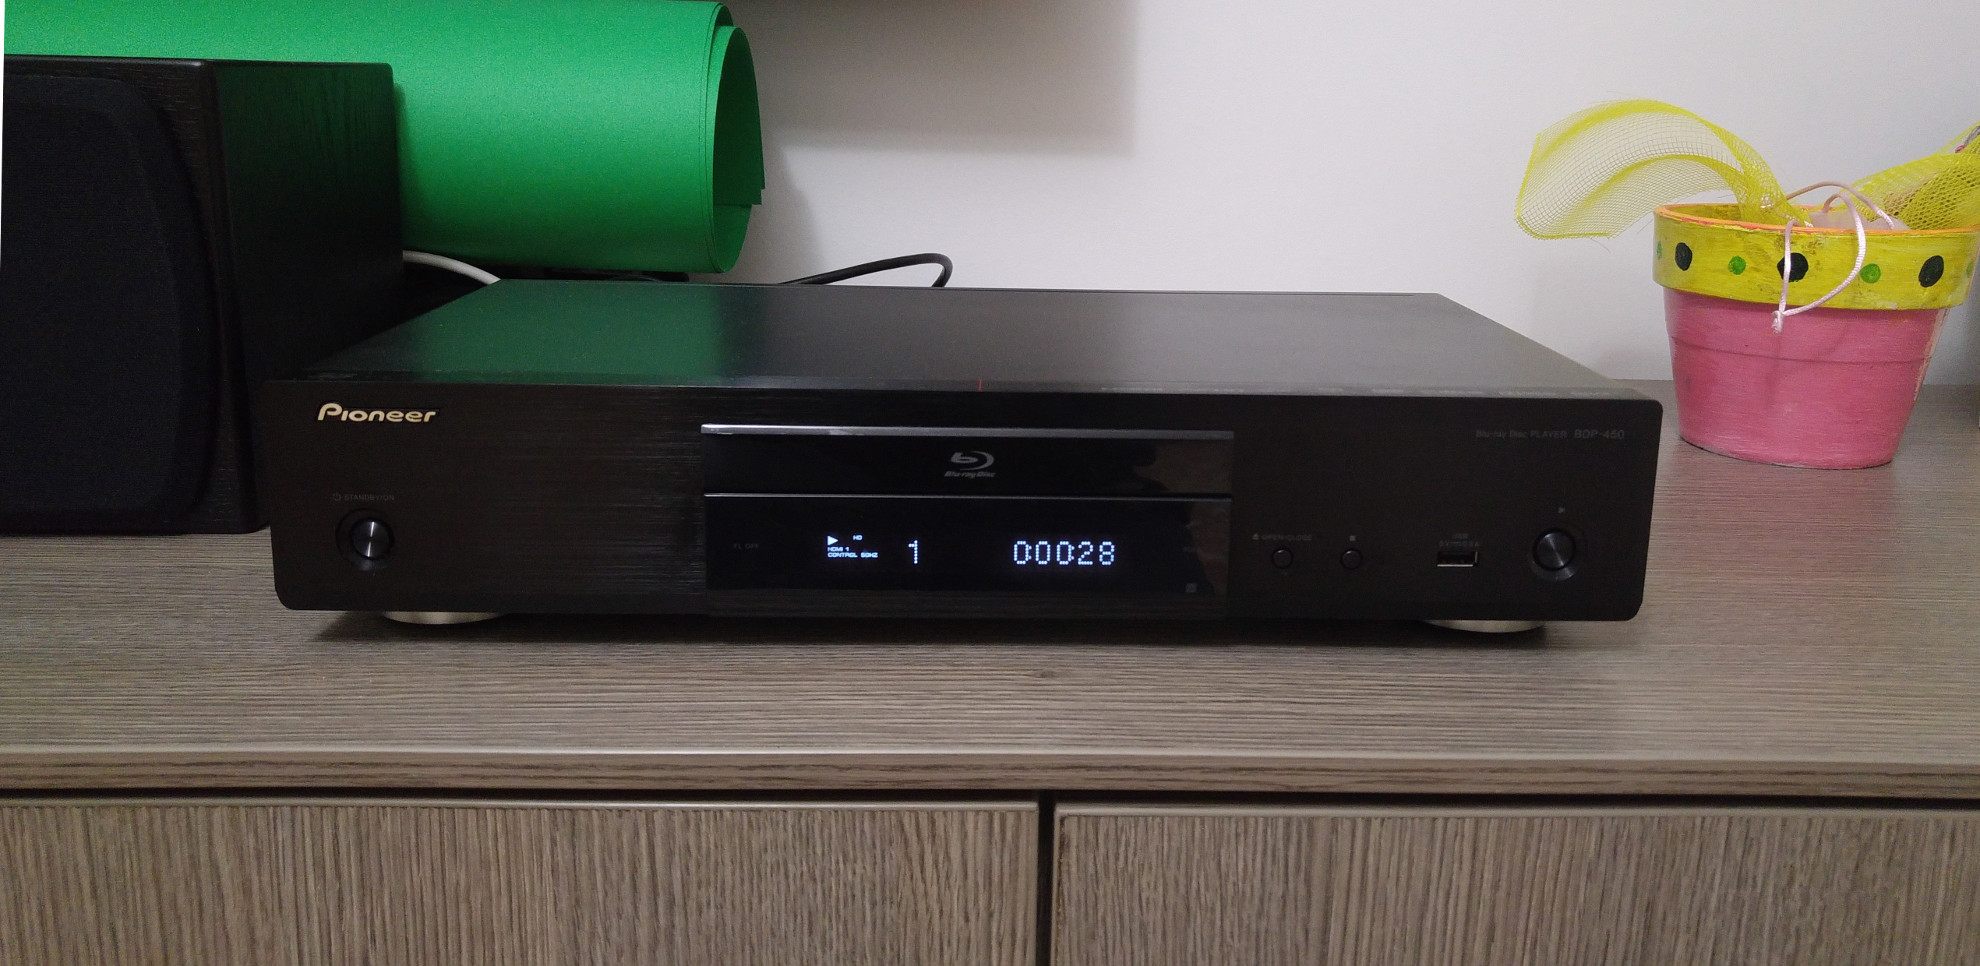 Lettore blu-ray Pioneer BDP-450